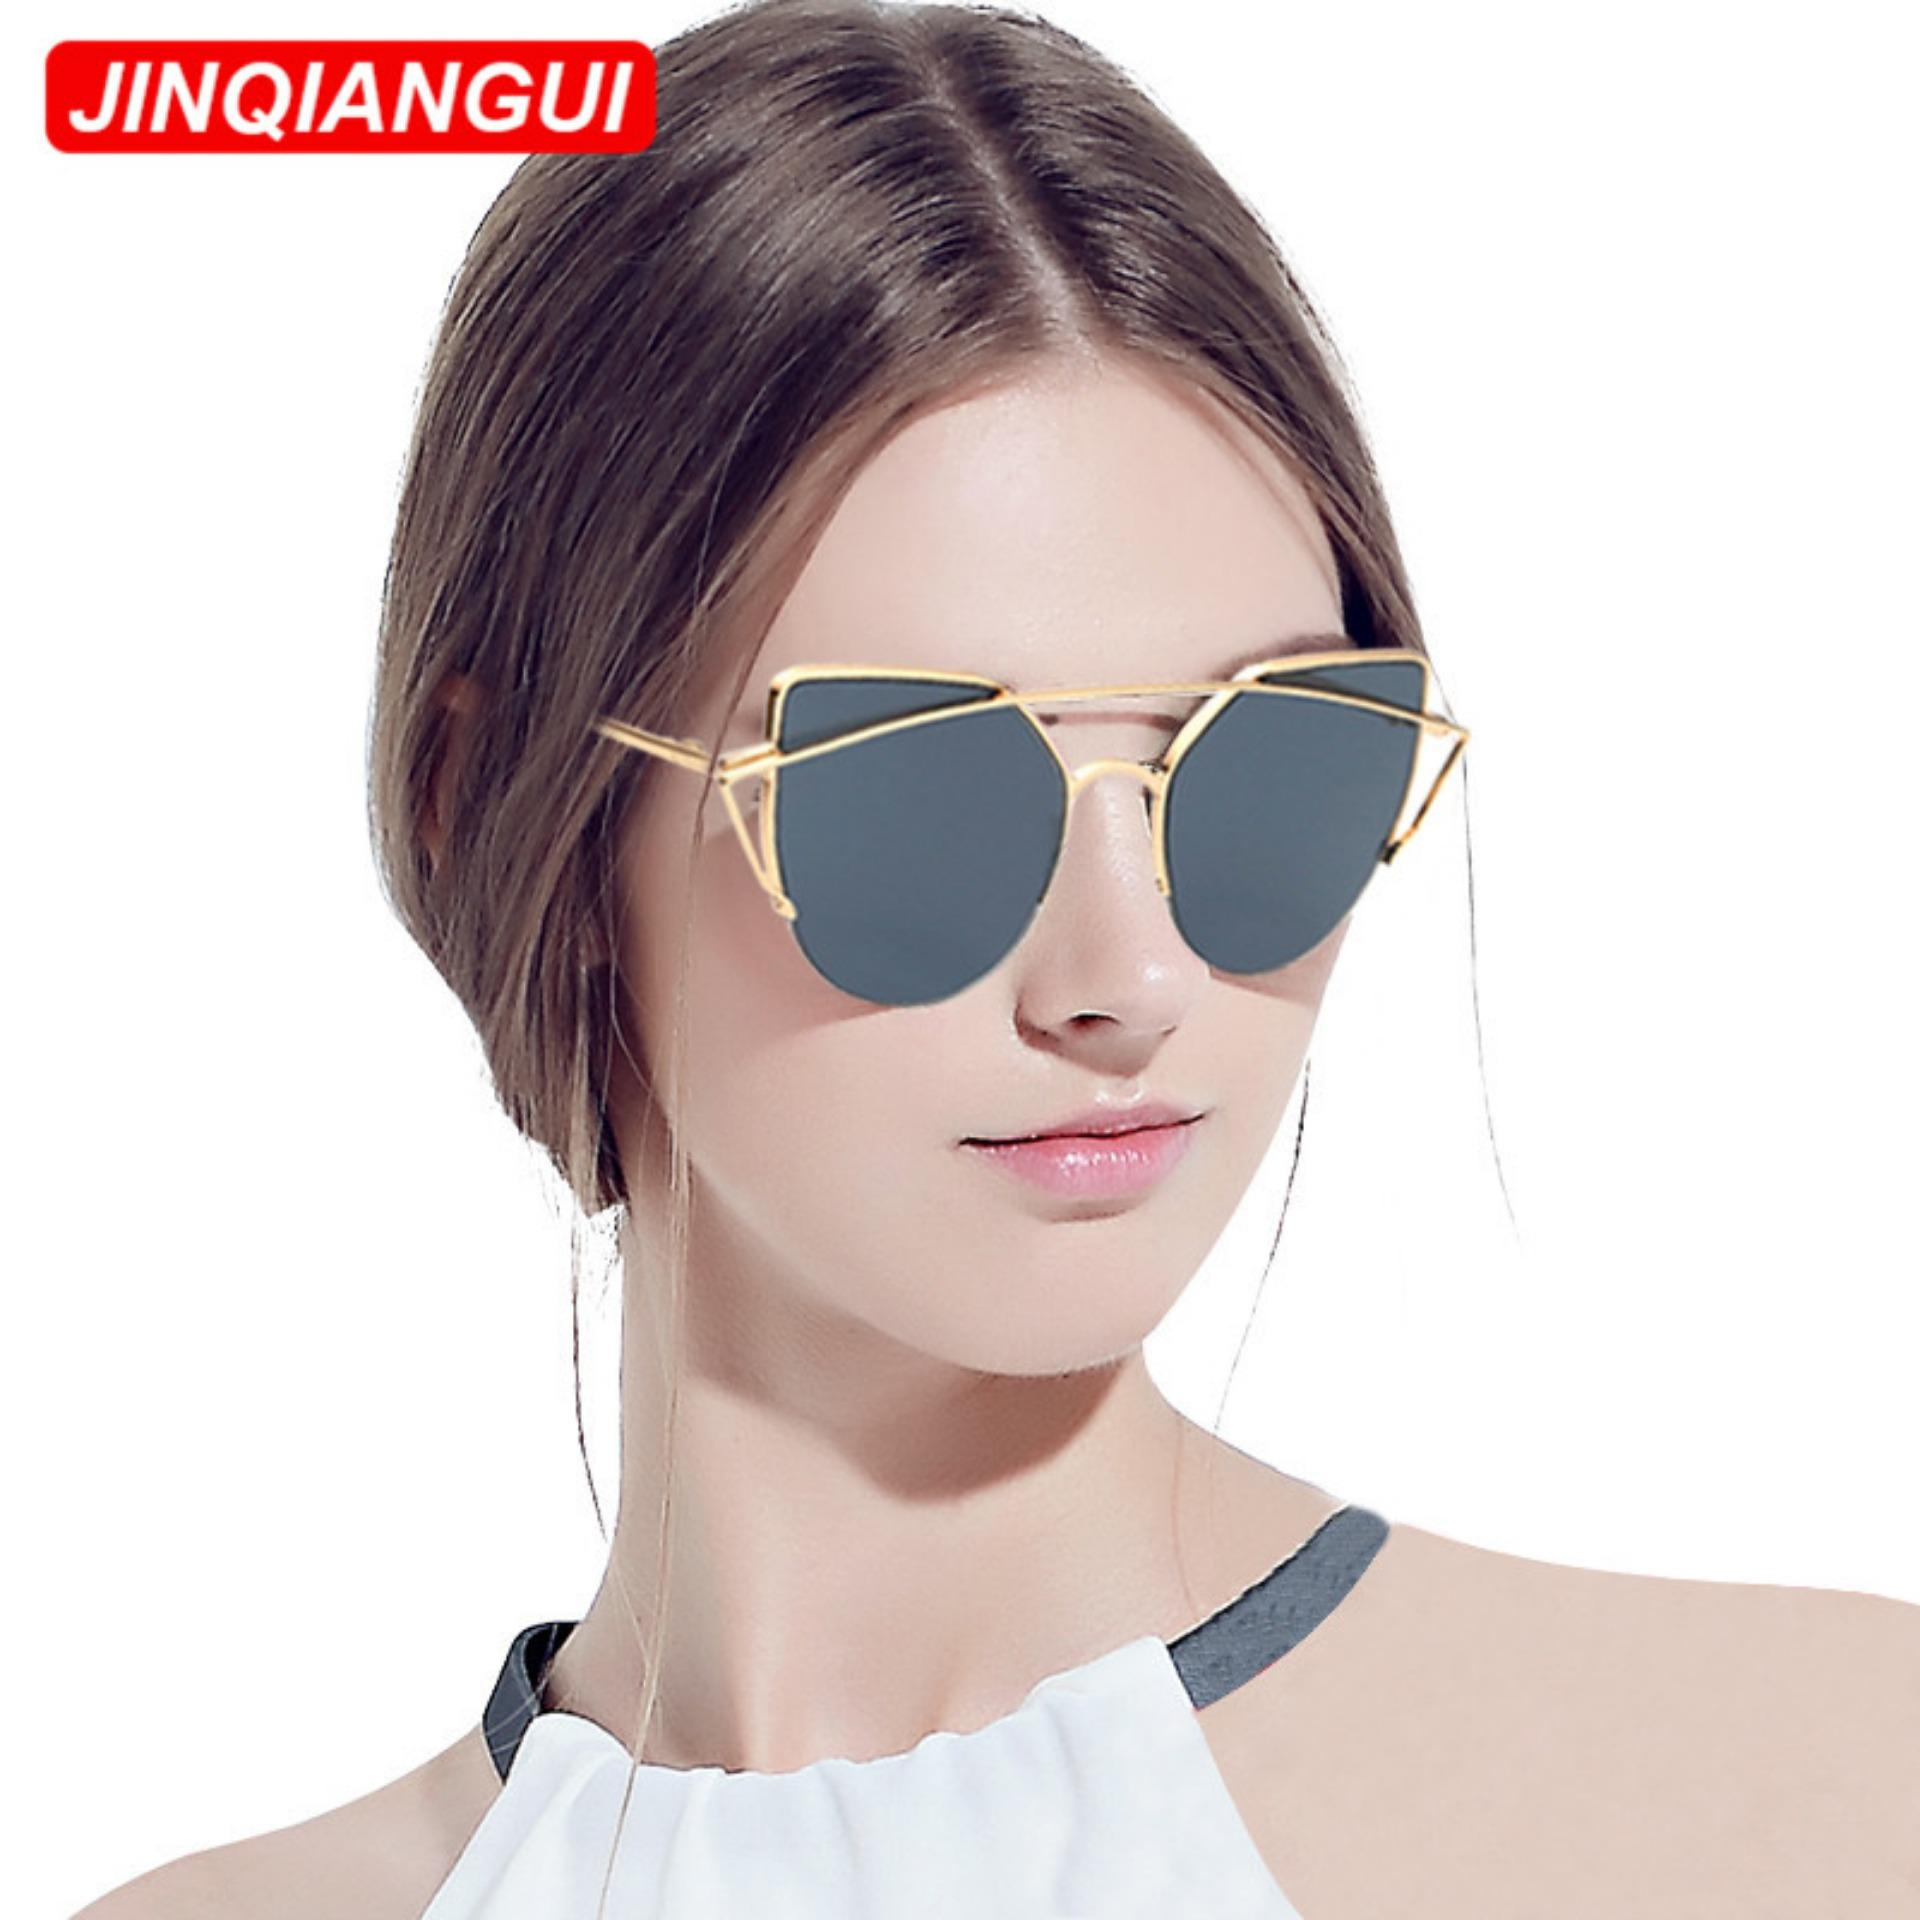 ... Sunglasses Women Cat Eye Retro GreyGold Color Polaroid LensTitanium Frame Driver Sunglasses Brand Design Original Box ...